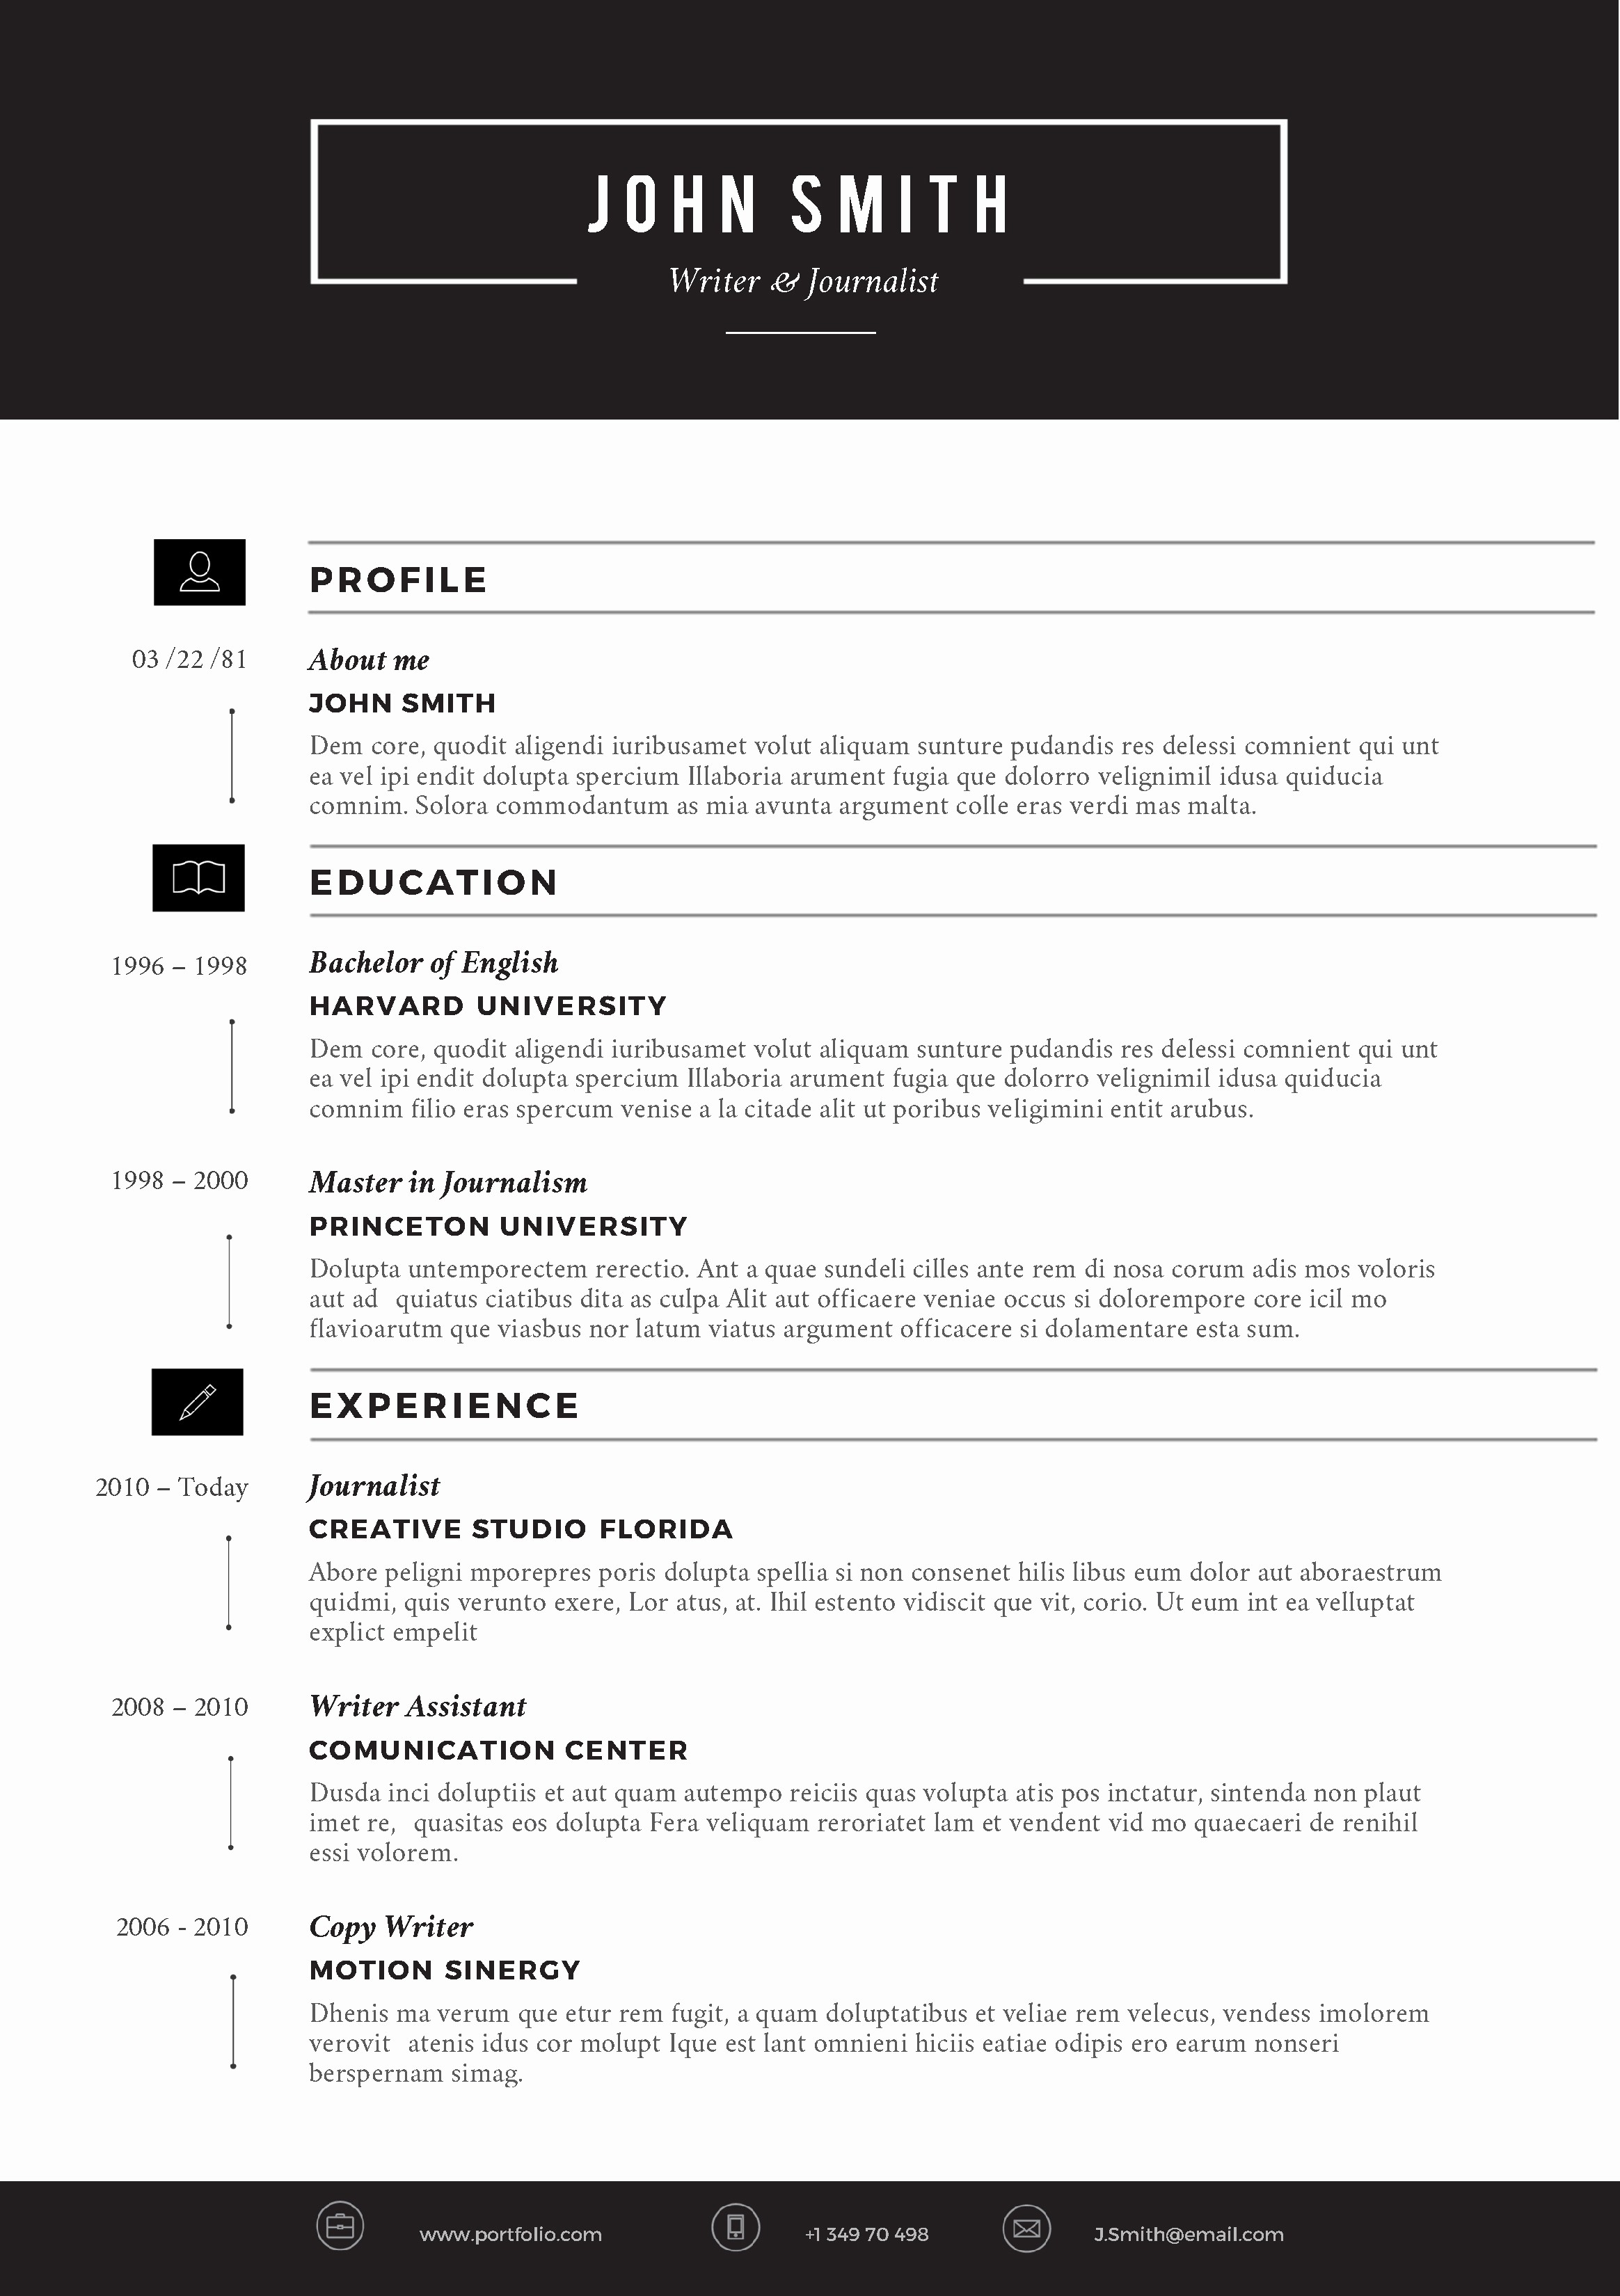 Ms Word Template for Resume Lovely Cvfolio Best 10 Resume Templates for Microsoft Word